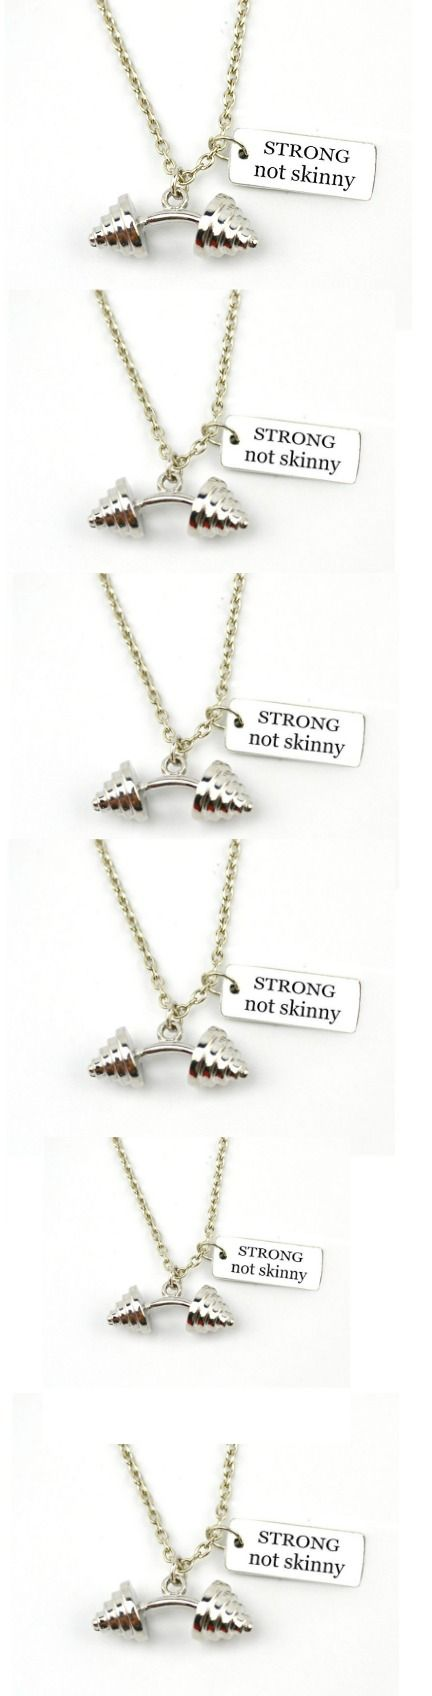 """""""Strong Not Skinny"""" Fitness Weightlifting  Necklace! Click The Image To Buy It Now or Tag Someone You Want To Buy This For. #Weightlifting"""